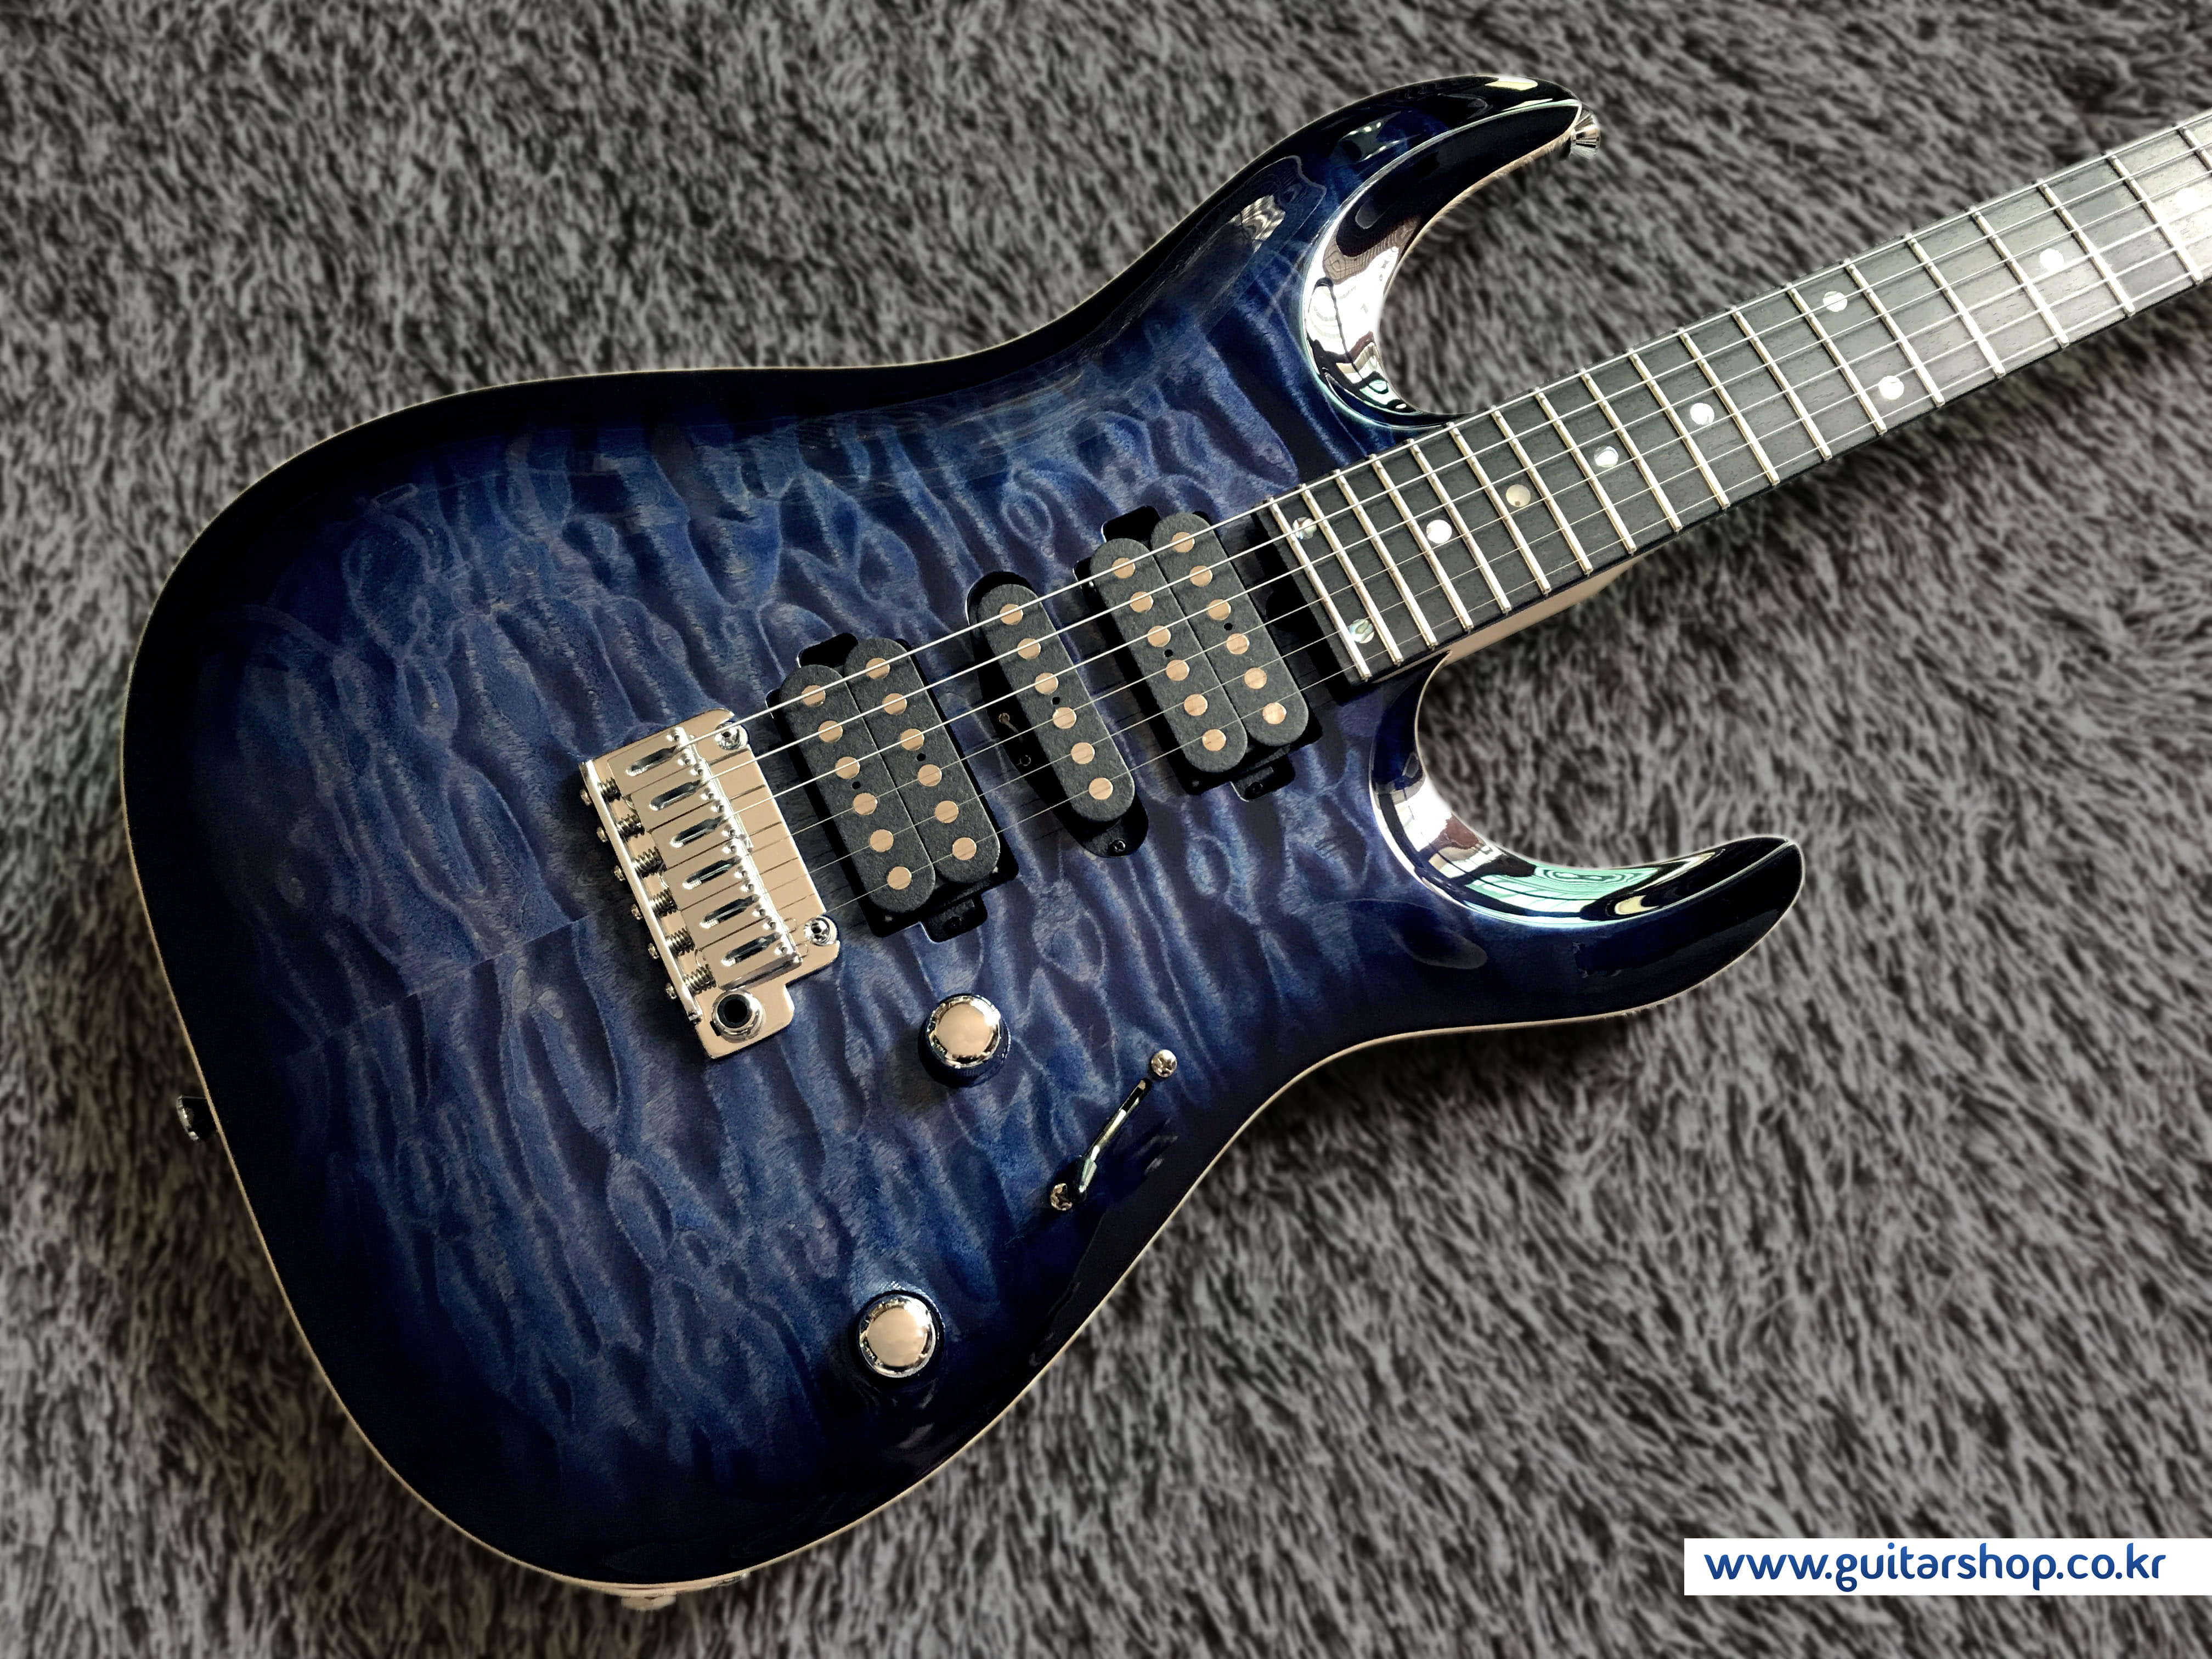 T's DST-24,Carved GUITAR (Whale Blue Burst)